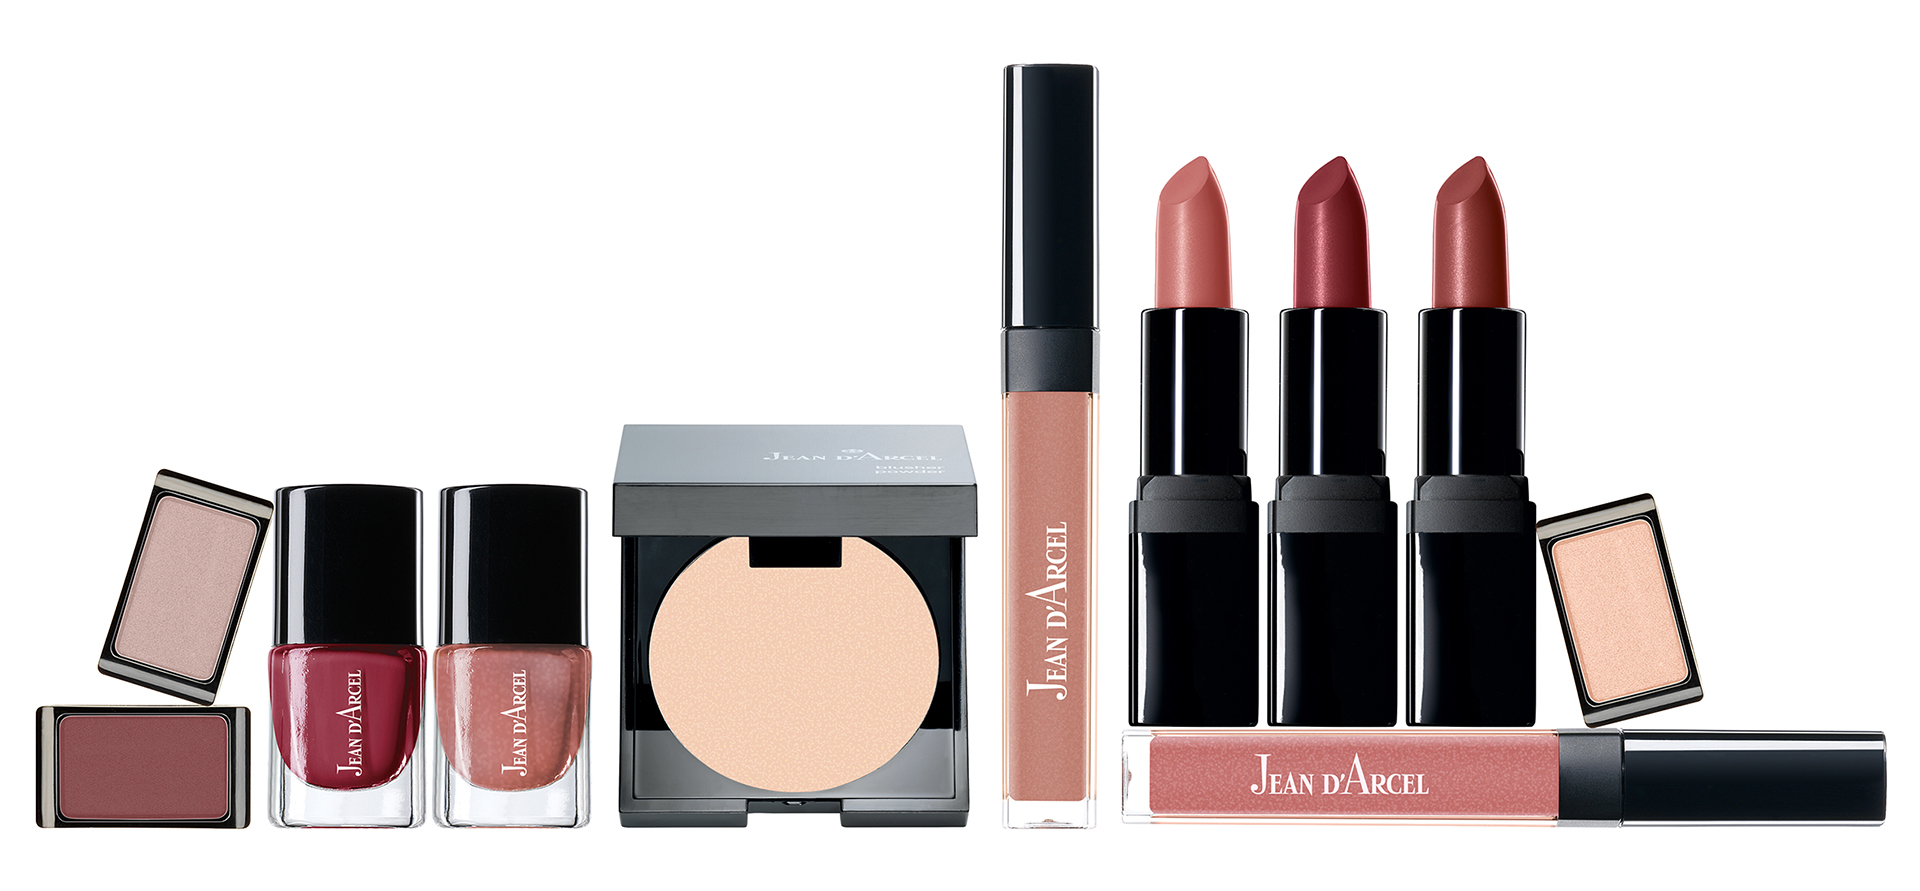 JEAN D'ARCEL NEW MAKE UP EDITION »Natural Rose«